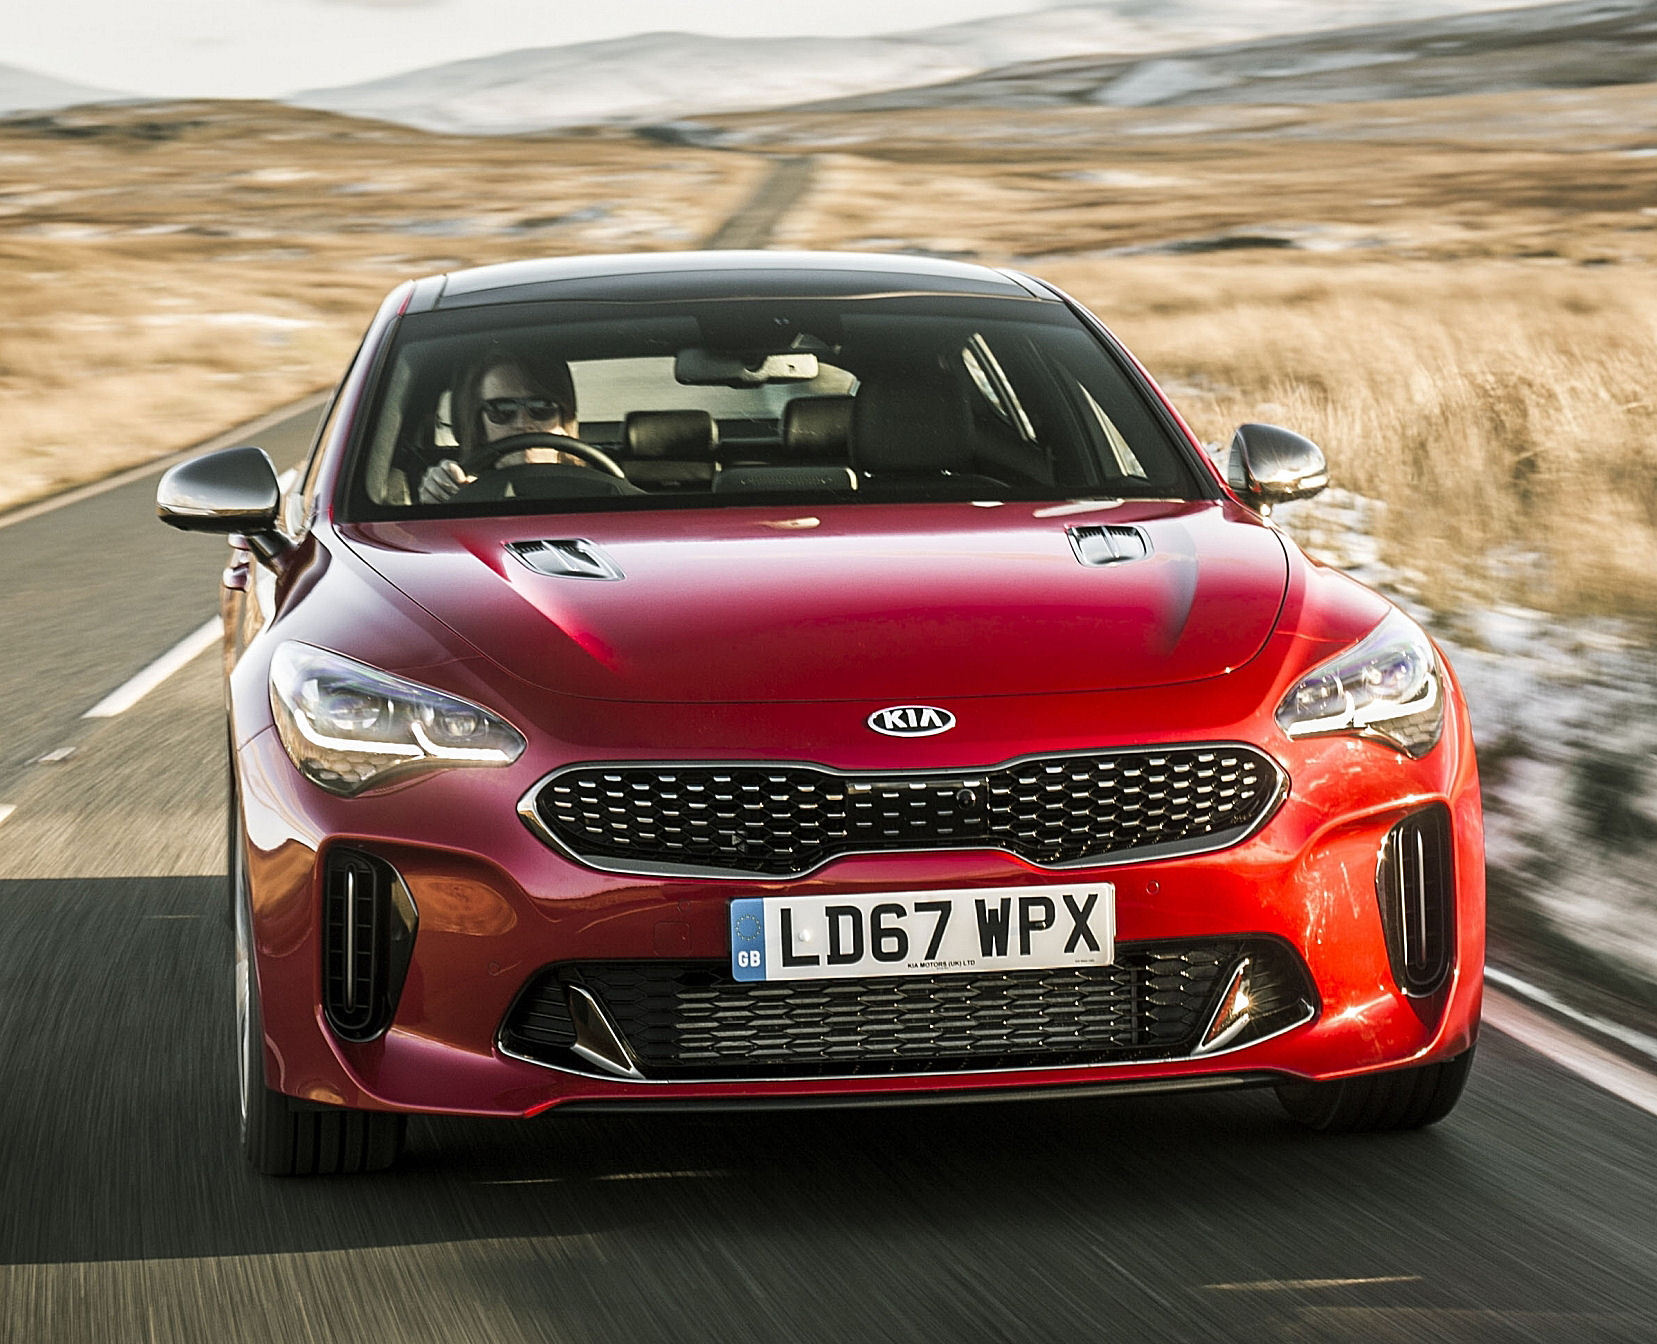 weekend roadtest kia stinger 3 3t gdi v6 gts wheels within wales. Black Bedroom Furniture Sets. Home Design Ideas